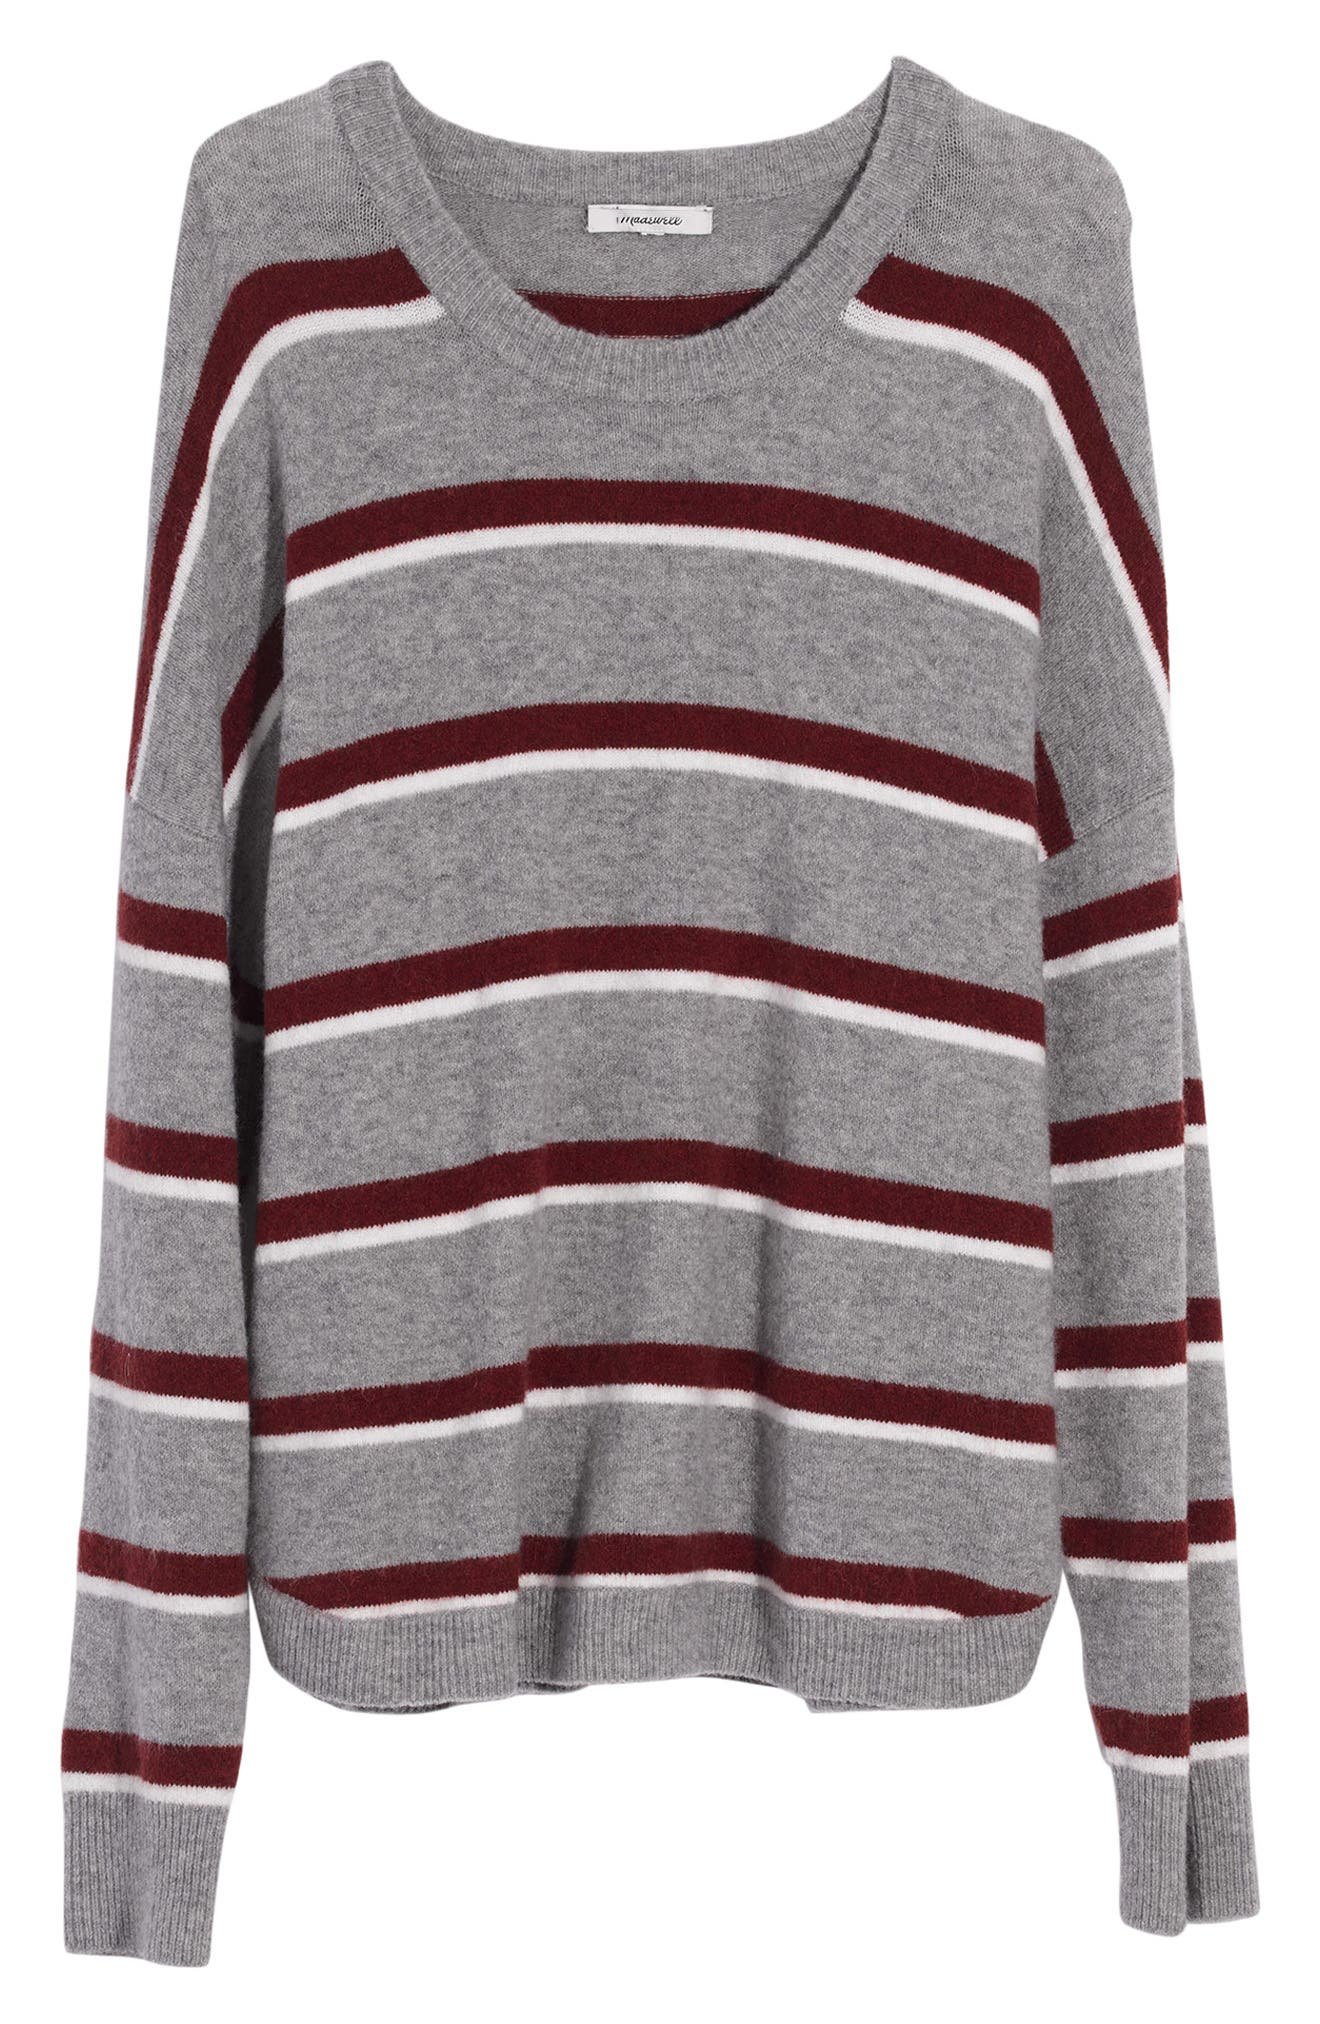 Westlake Striped Pullover Sweater in Coziest Yarn,                         Main,                         color, HEATHER GUNMETAL